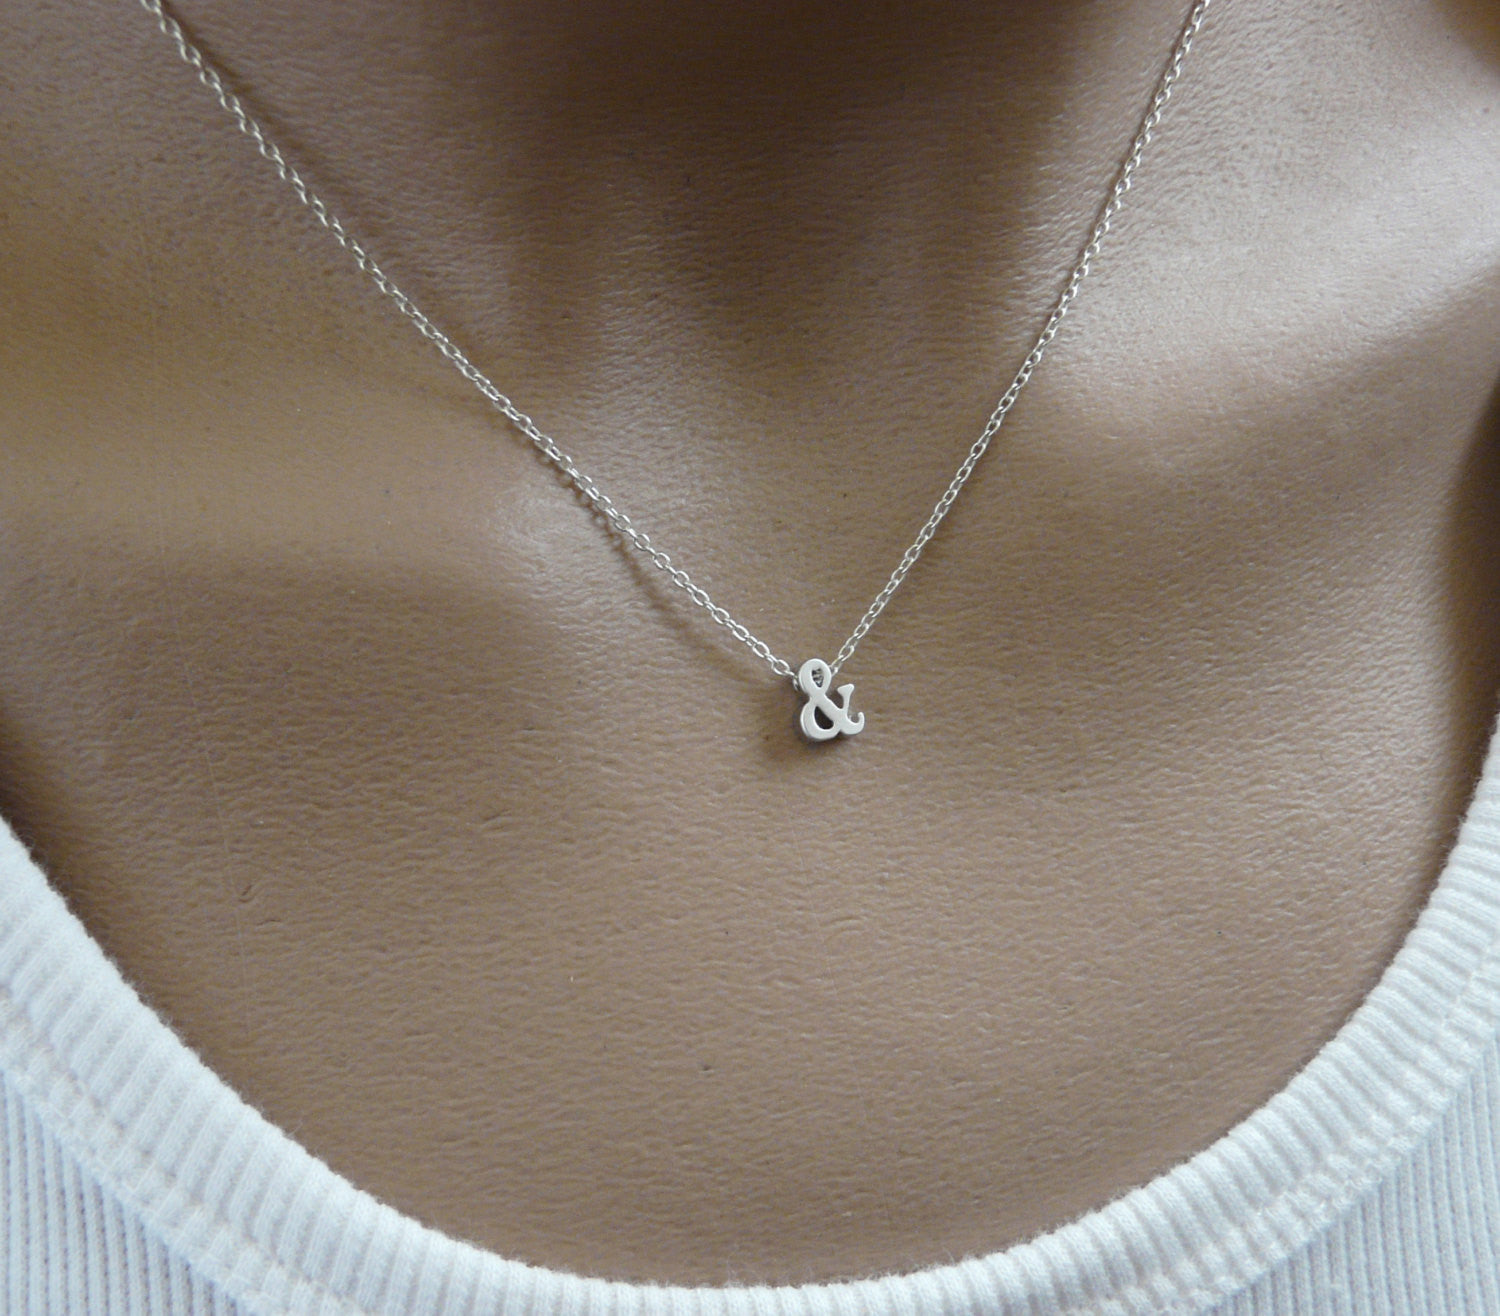 Ampersand necklace Gold / Silver - OpaLandJewelry